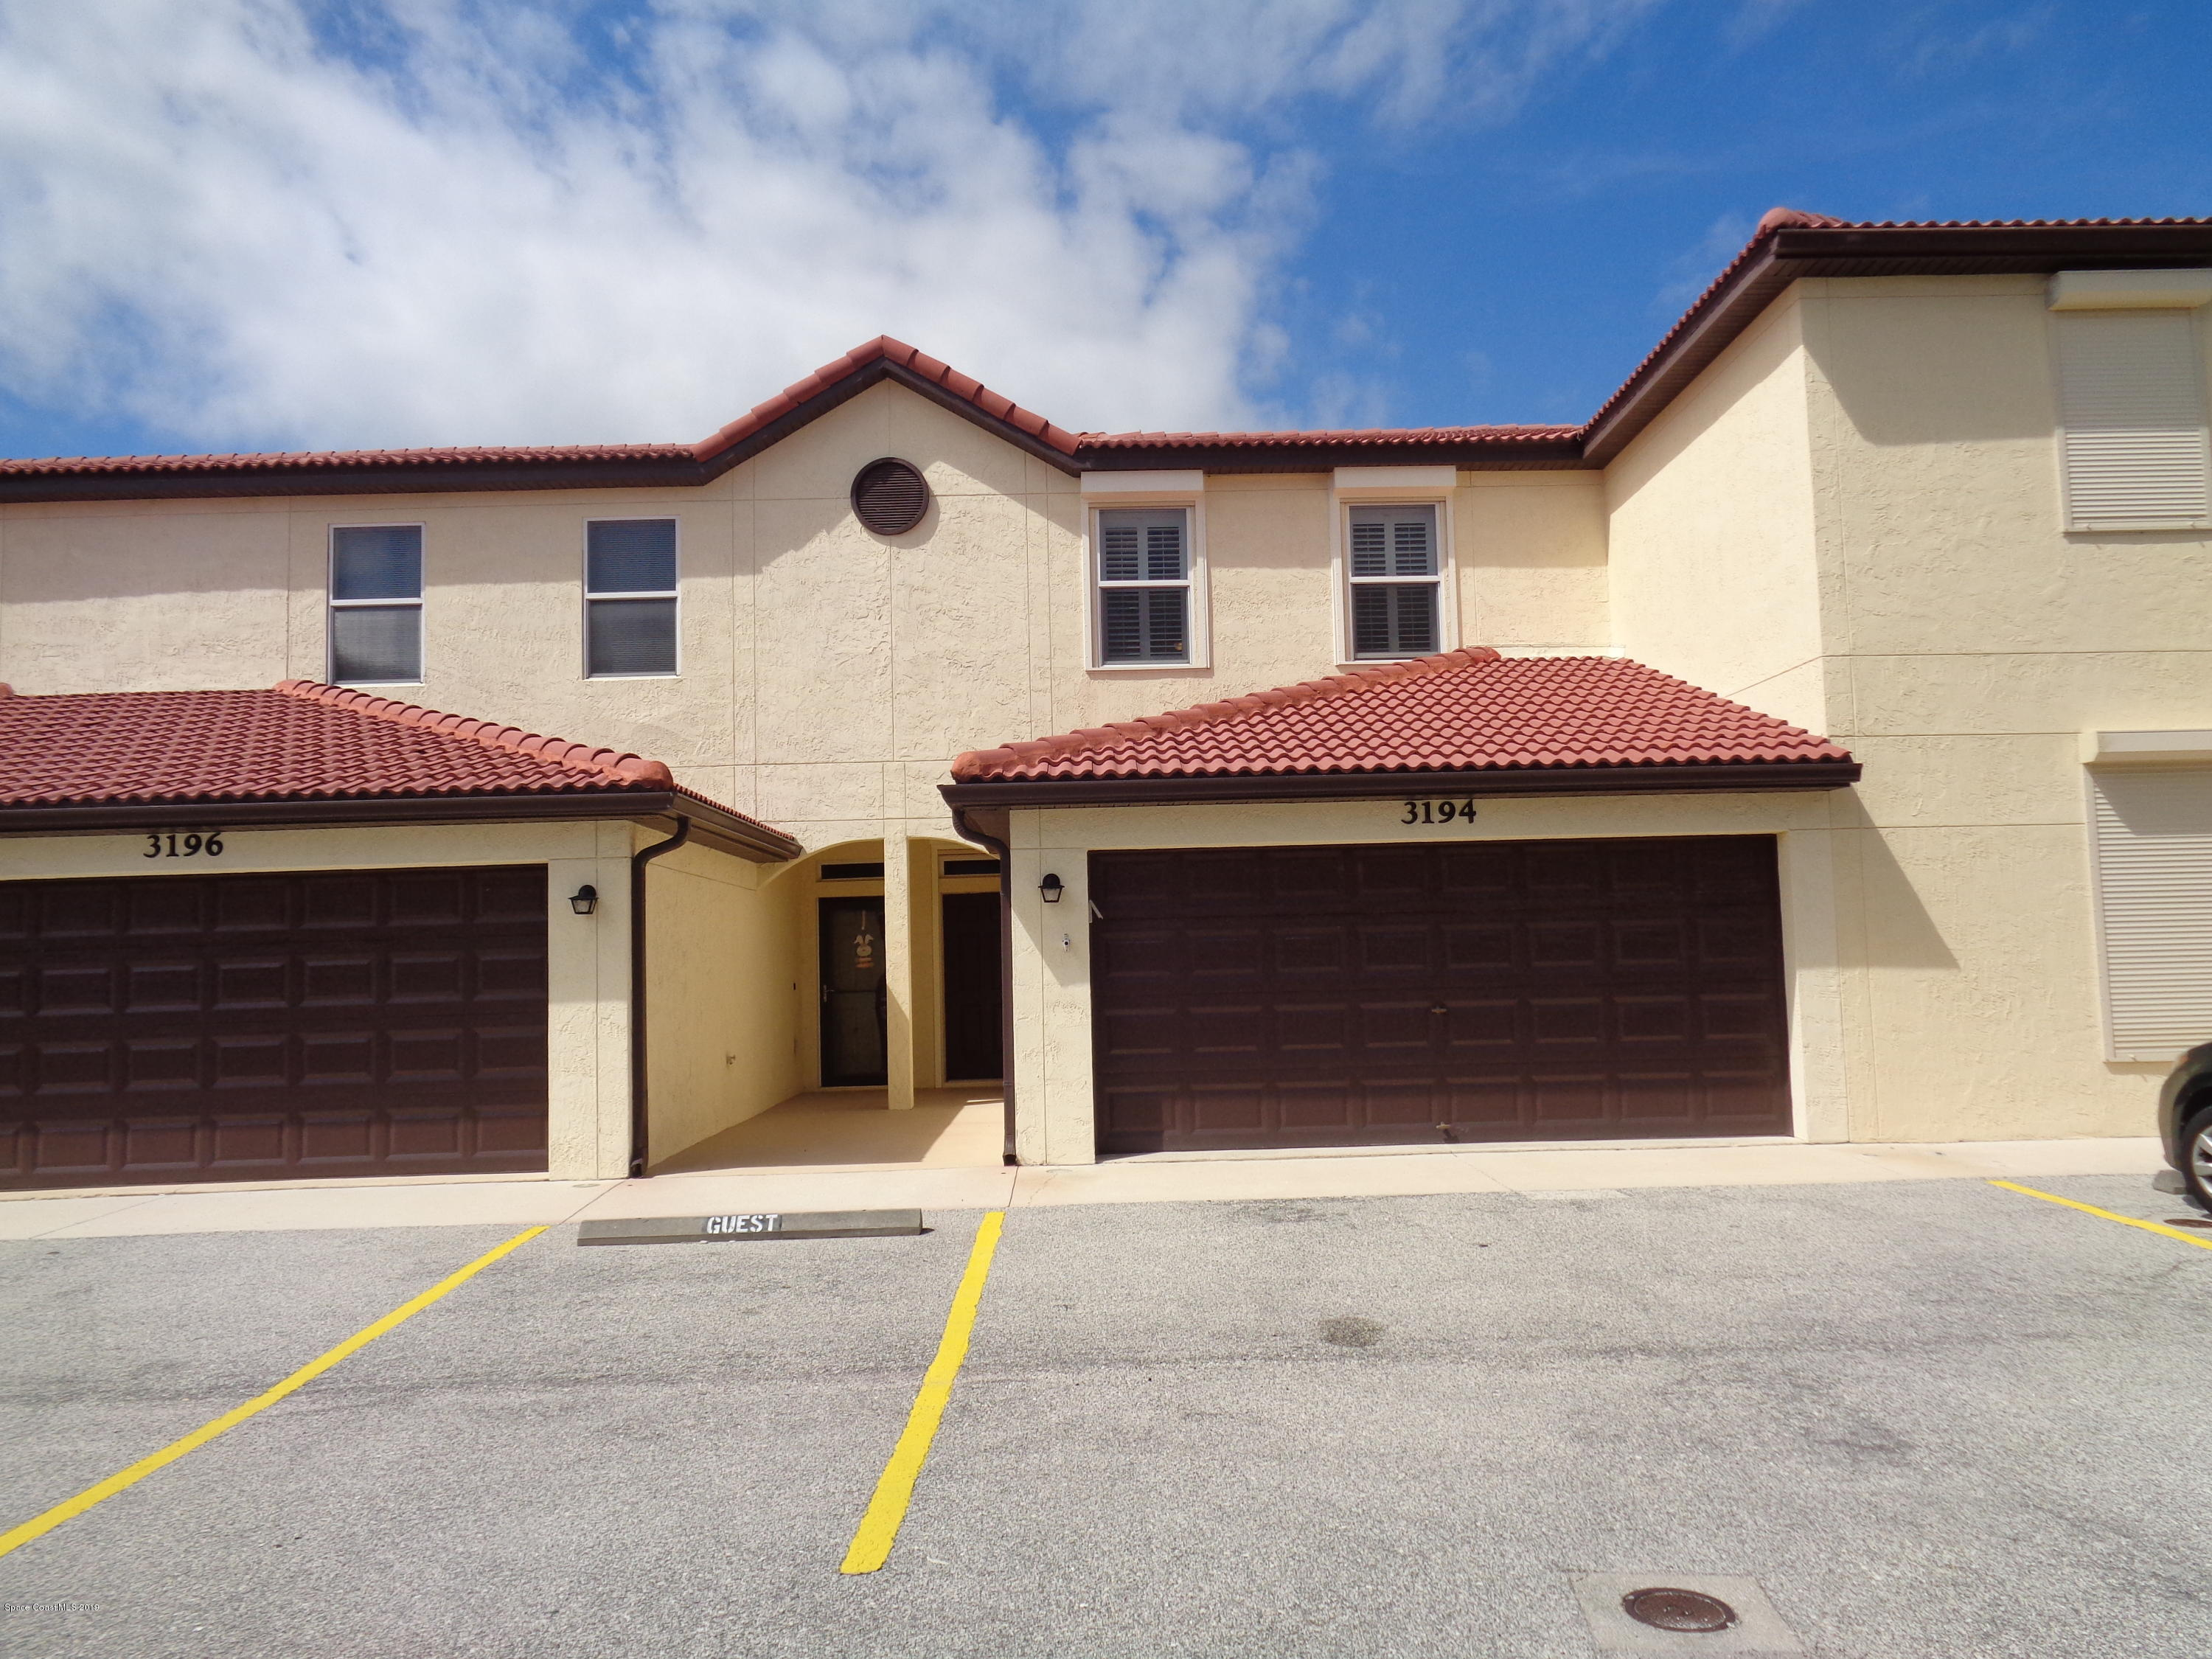 Single Family Home for Sale at 3194 Ricks Melbourne Beach, Florida 32951 United States